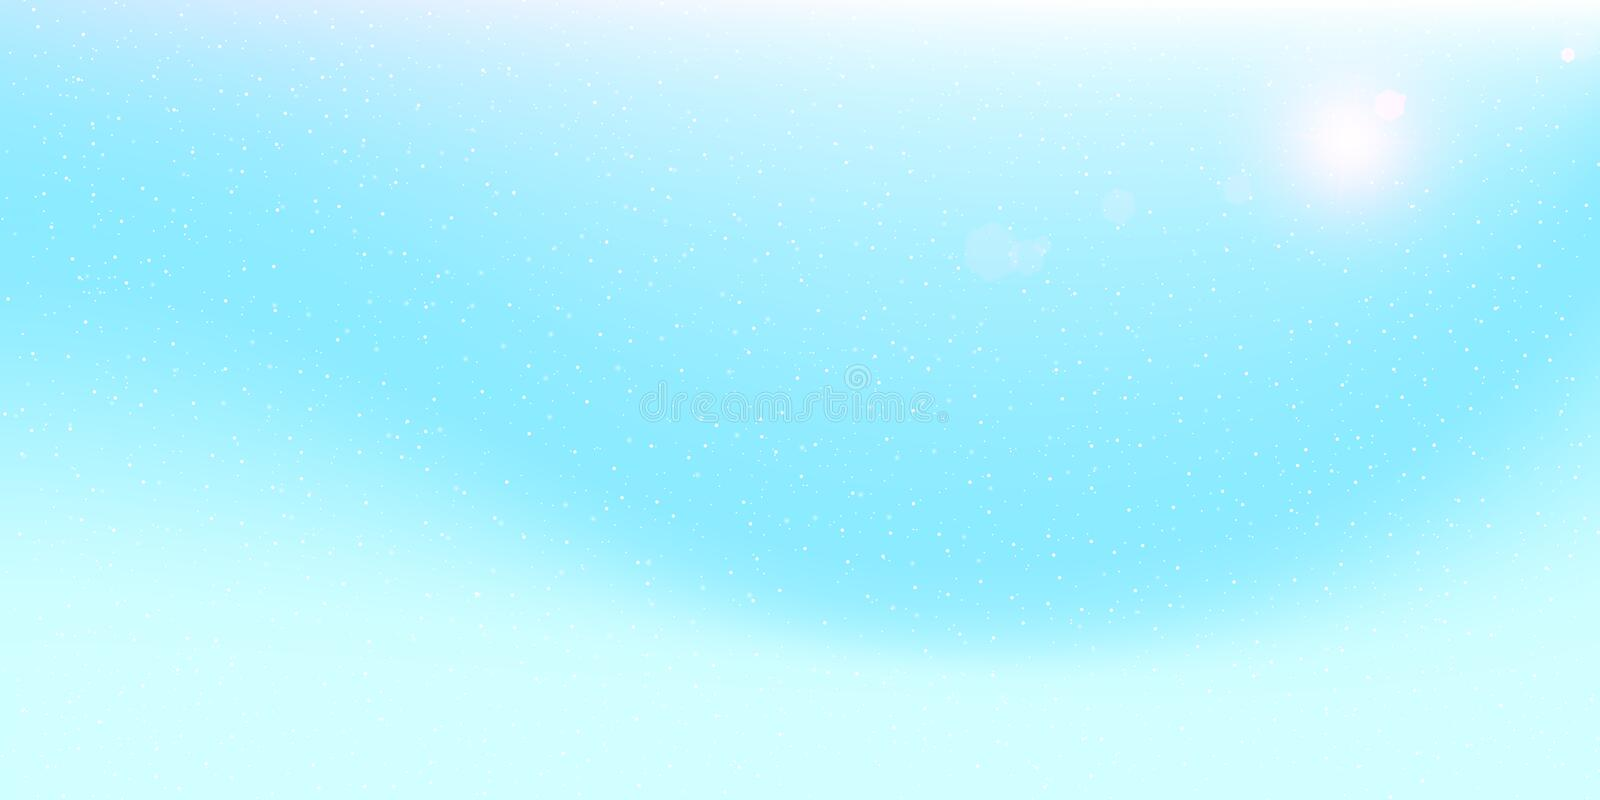 Snow Background. Winter sky. Vector. vector illustration